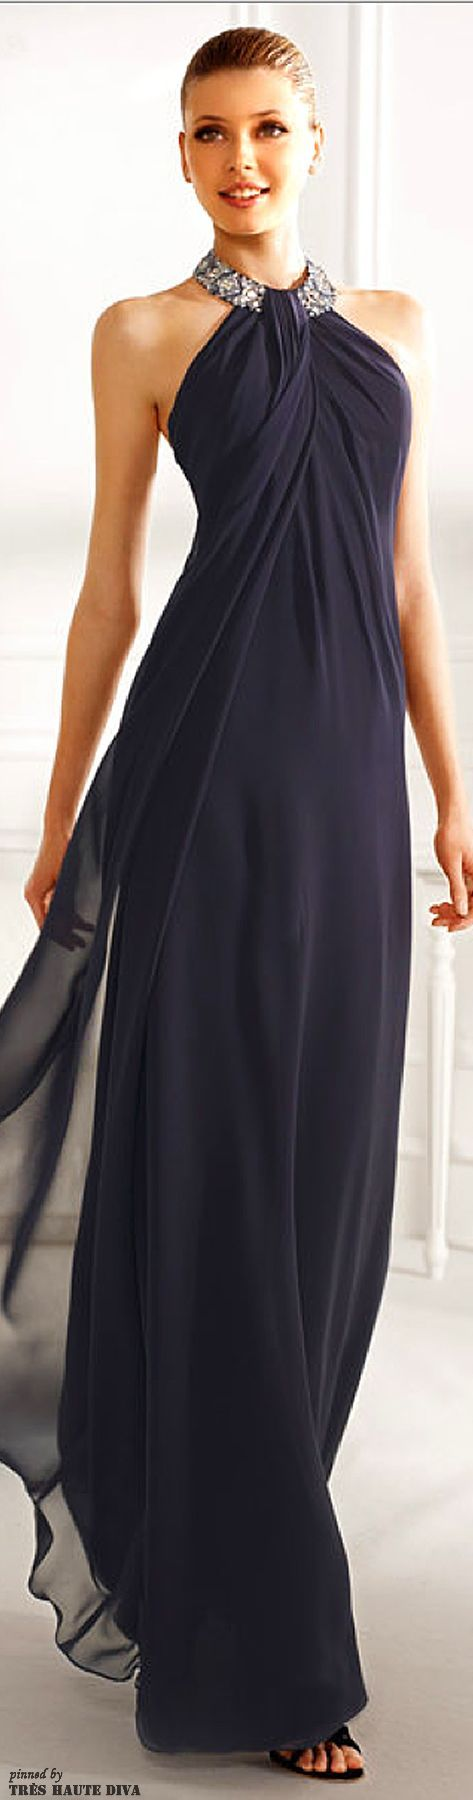 best evening gowns images on pinterest gown dress tank dress